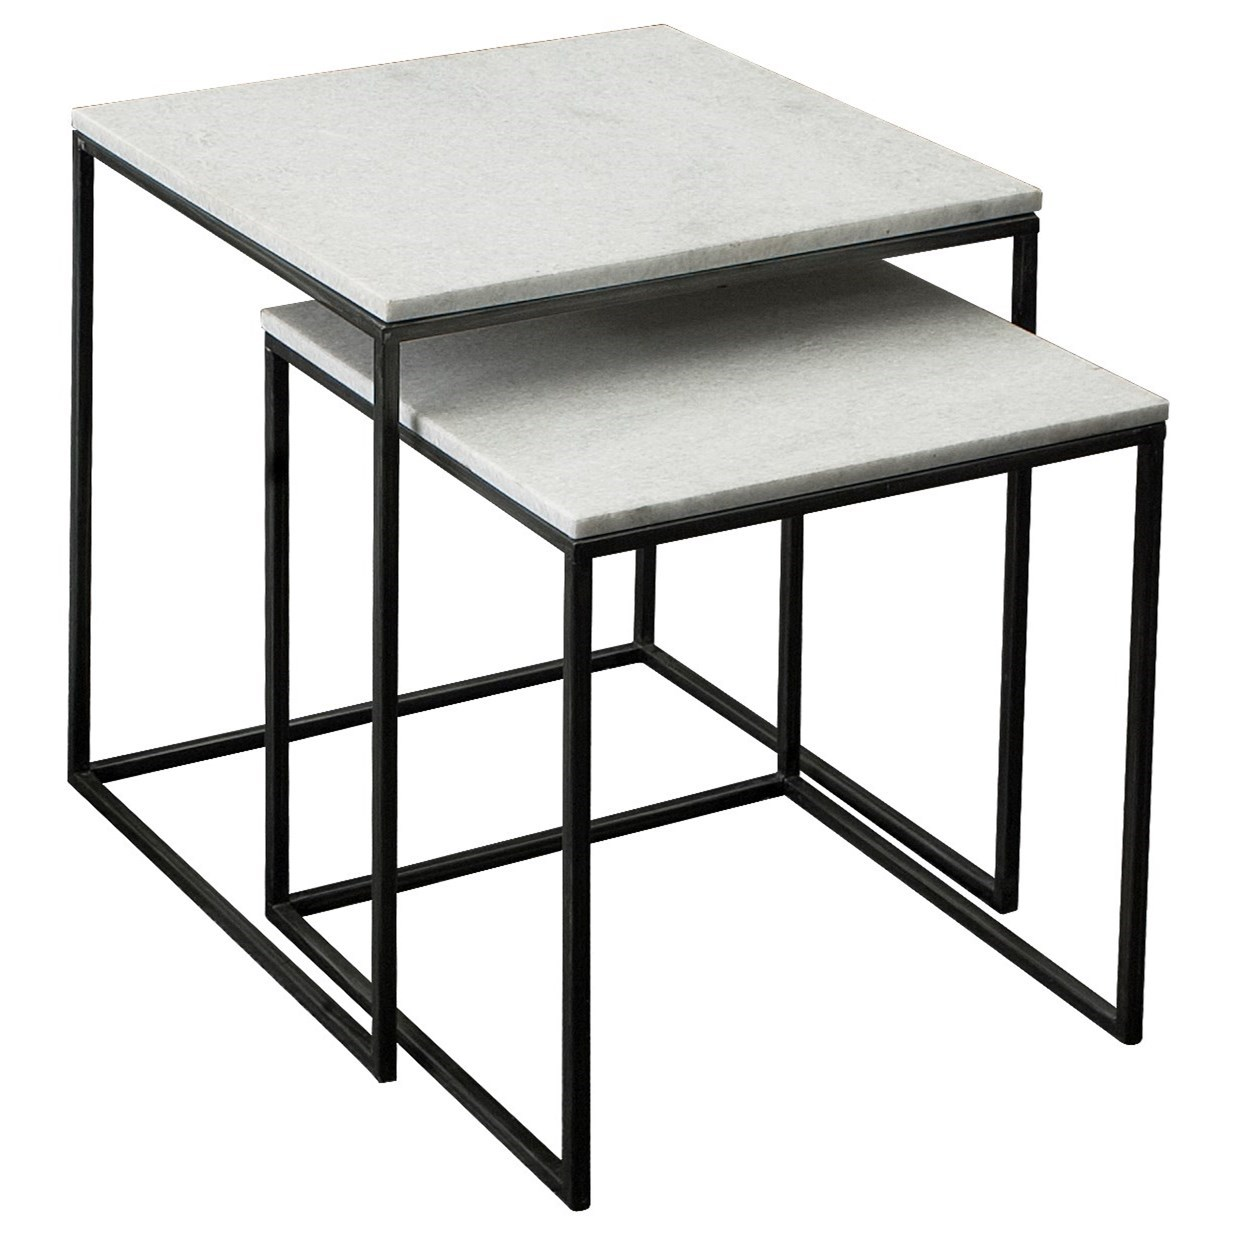 Coast to Coast Imports Coast to Coast Accents Nesting Tables - Item Number: 79700